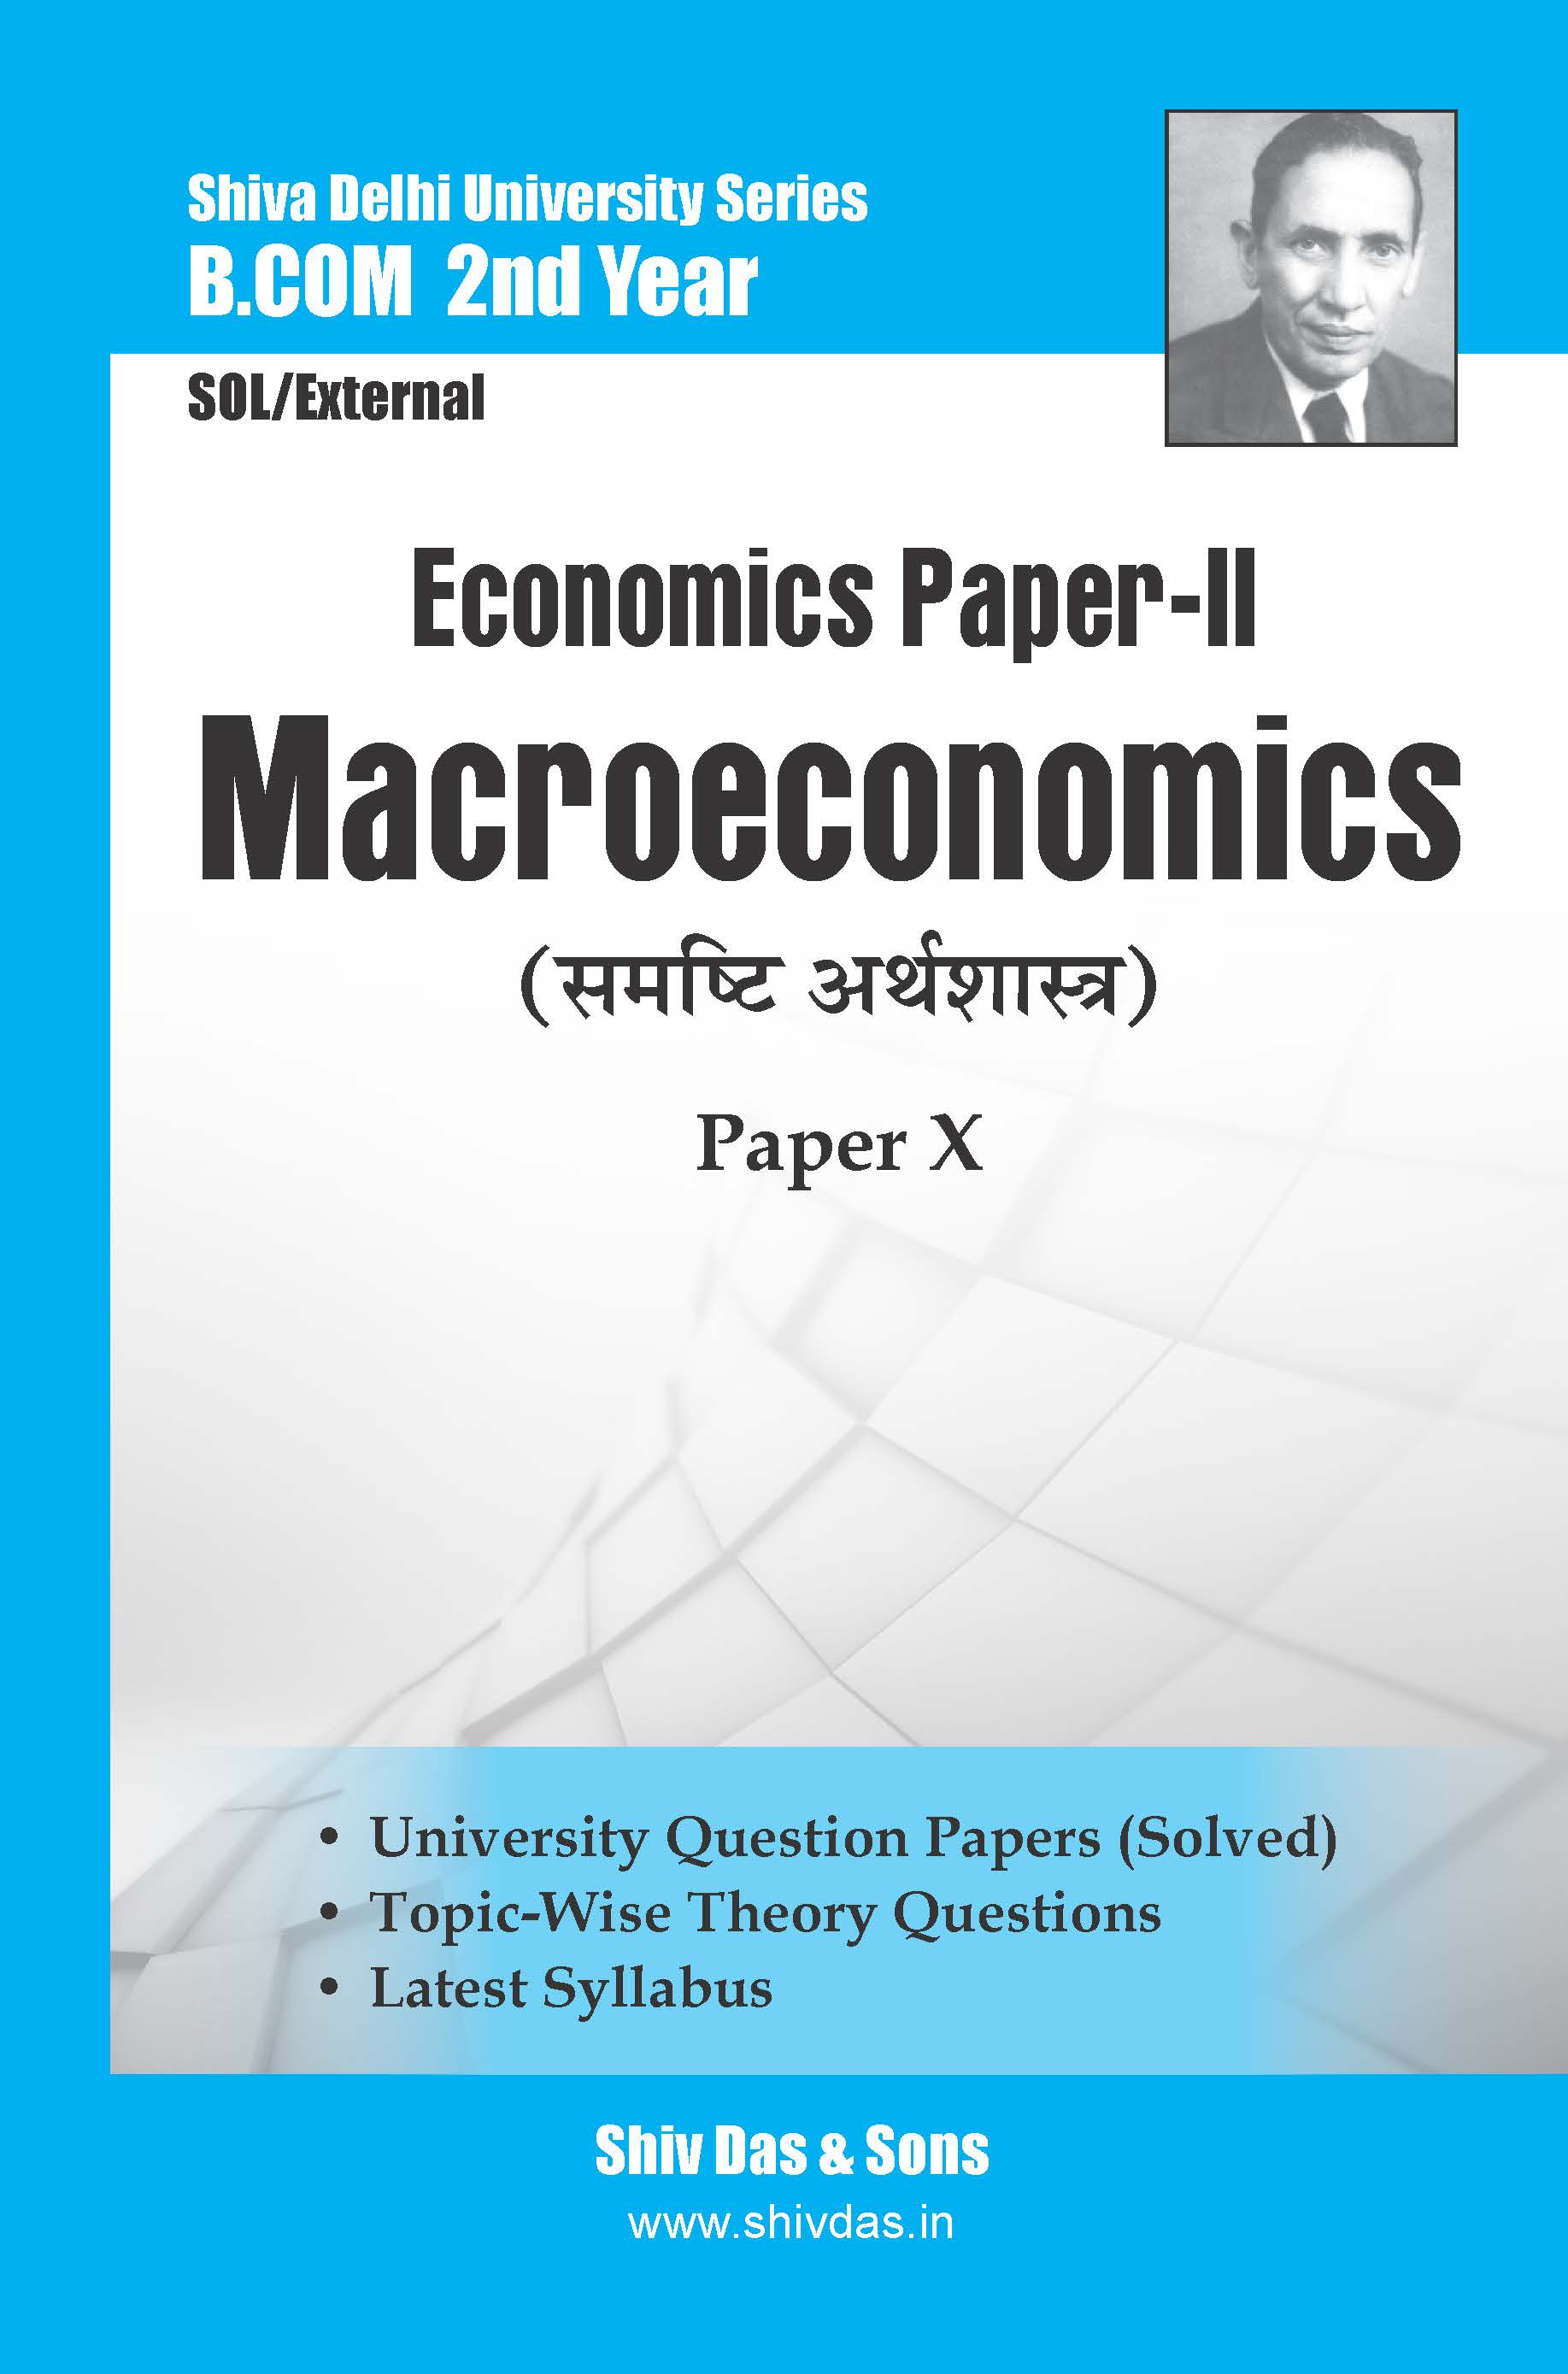 B.Com-2nd Year SOL/External Macroeconomics (Hindi Medium) Shiv Das Delhi University Series